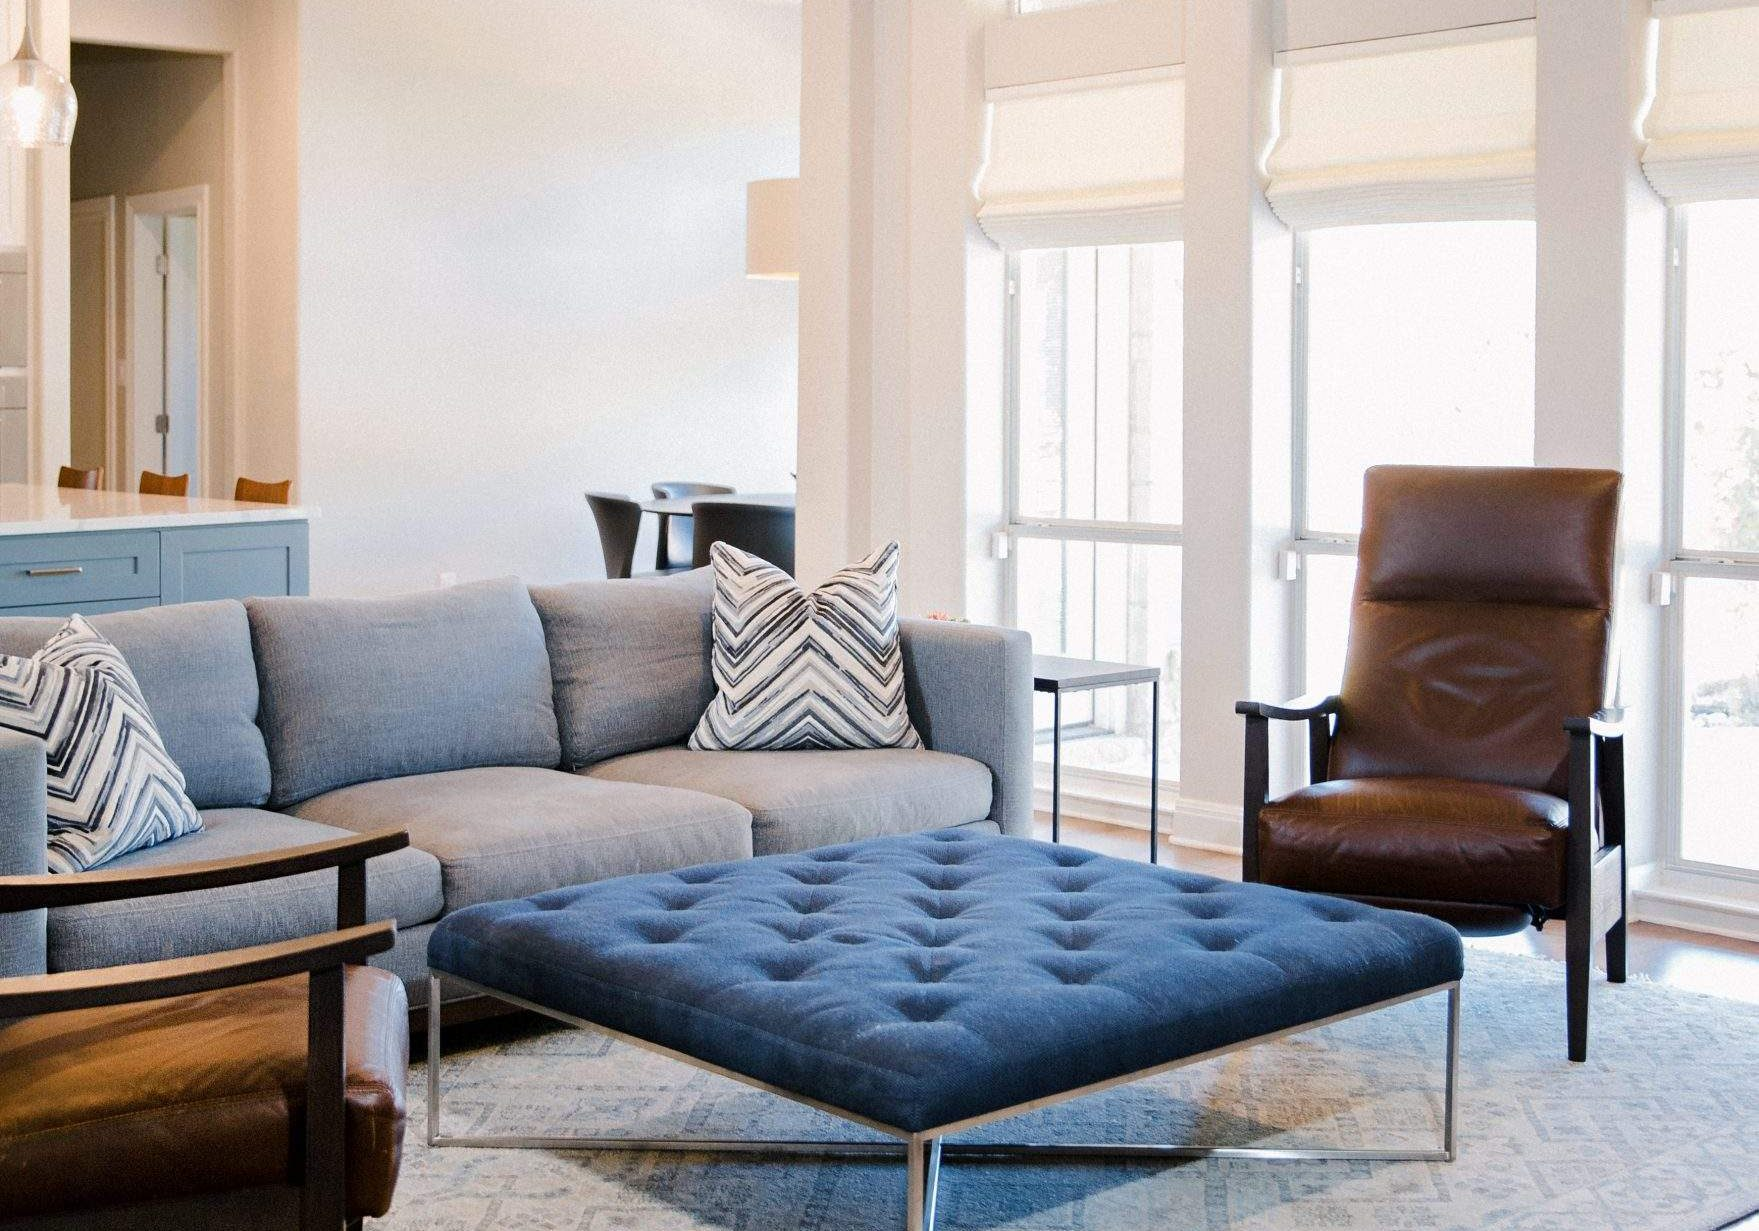 Living Room Interior Design, Sofa, Chairs, and Blue Upholstered Coffee Table, Etch Interior Design, Austin, Texas